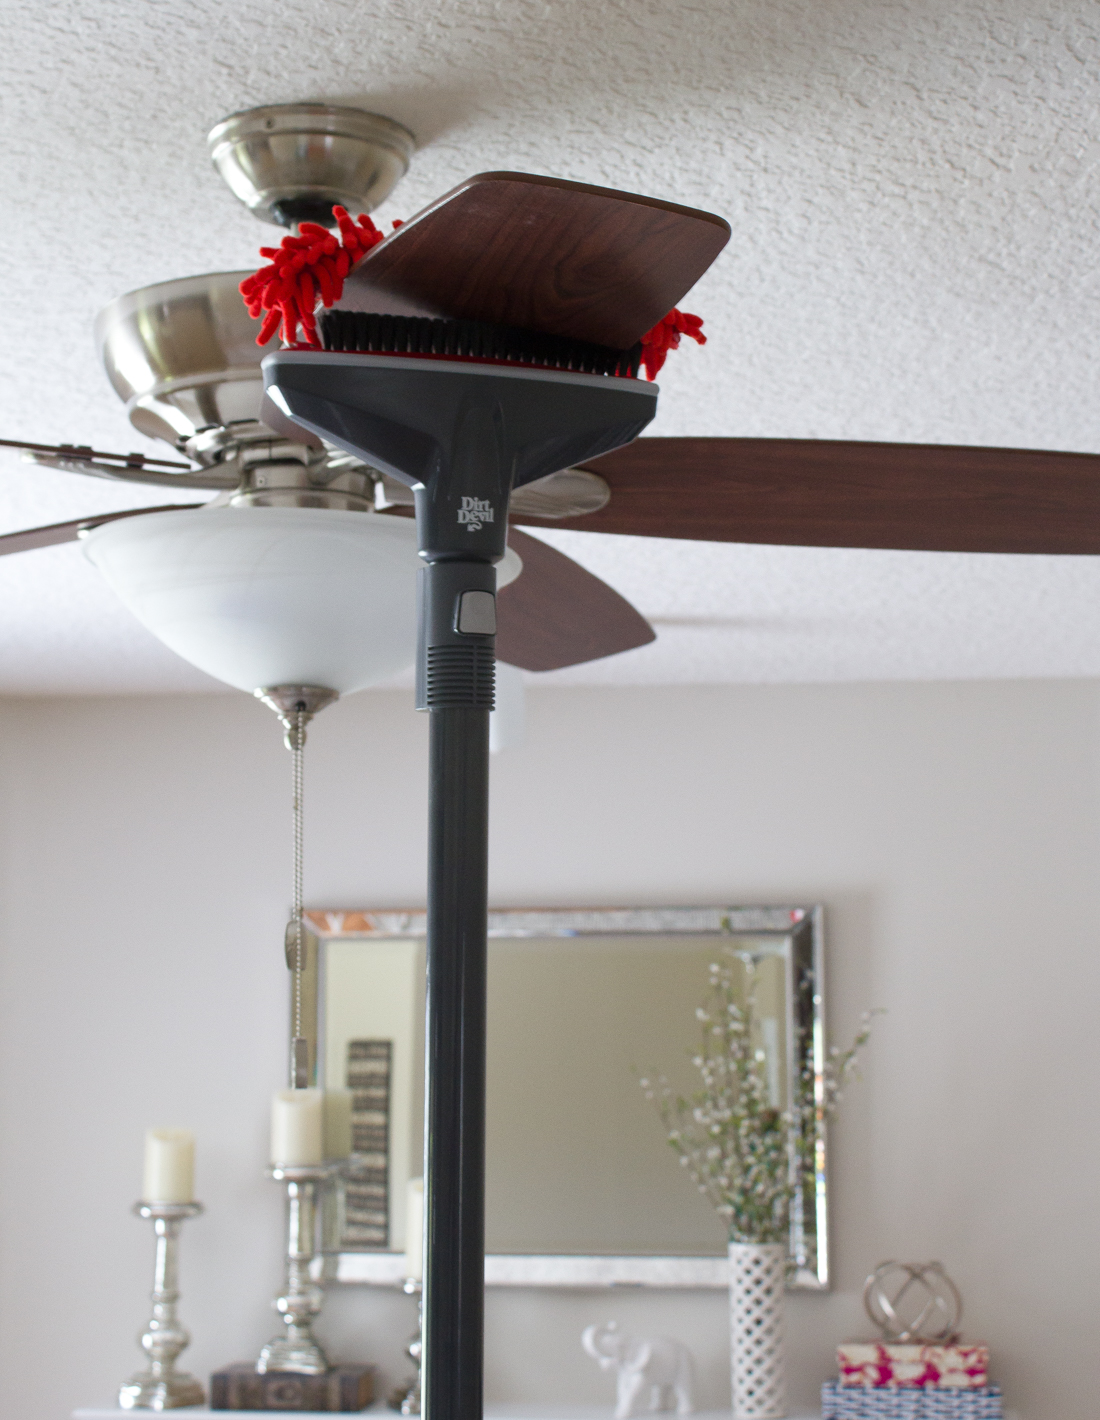 Easiest and quickest way to clean ceiling fan blades #ad #DirtDevil360Clean